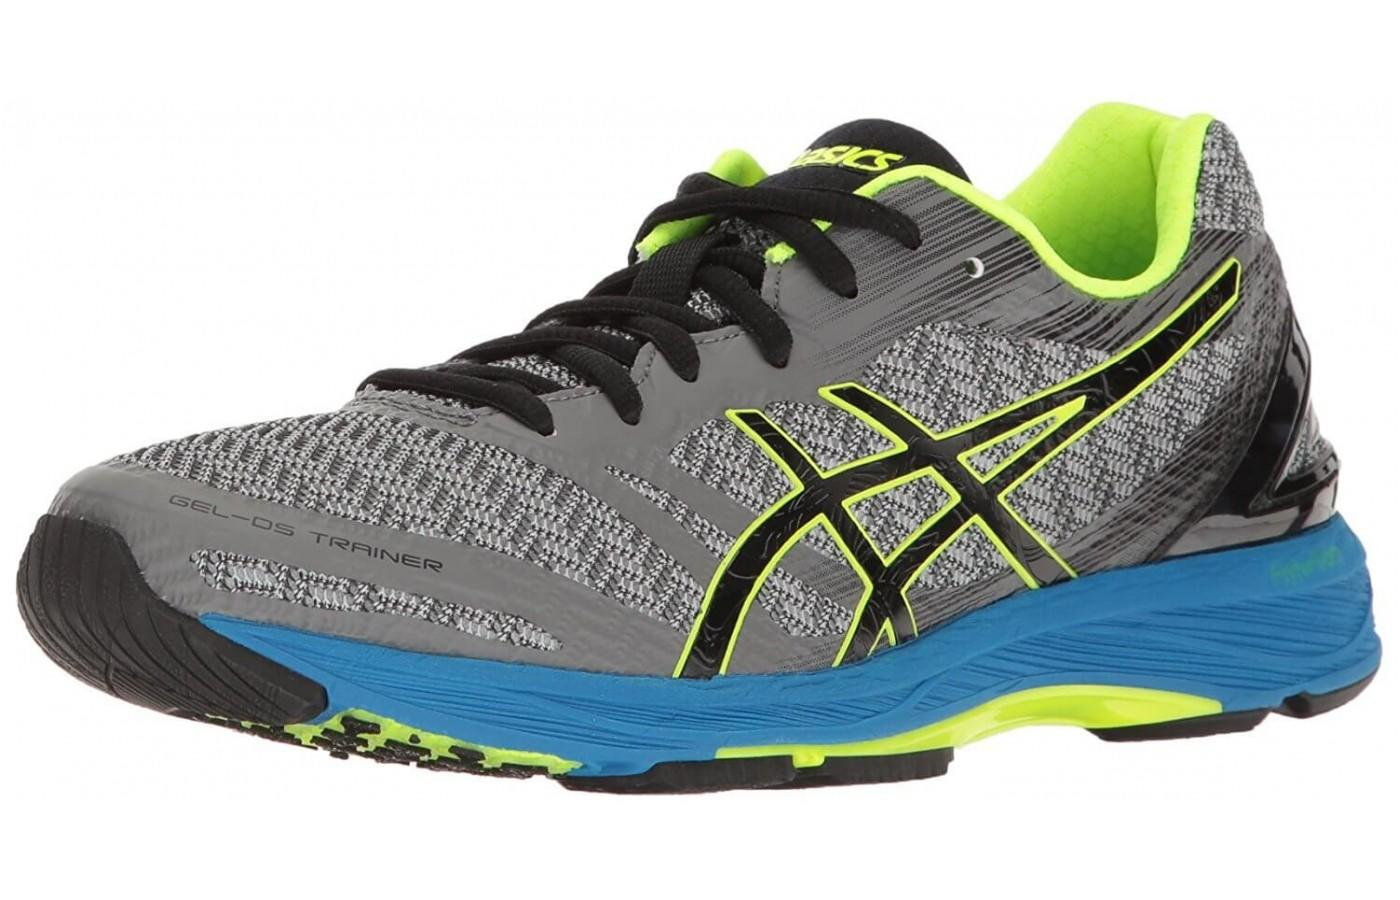 The Asics Gel DS Trainer 22 shown from the front/side